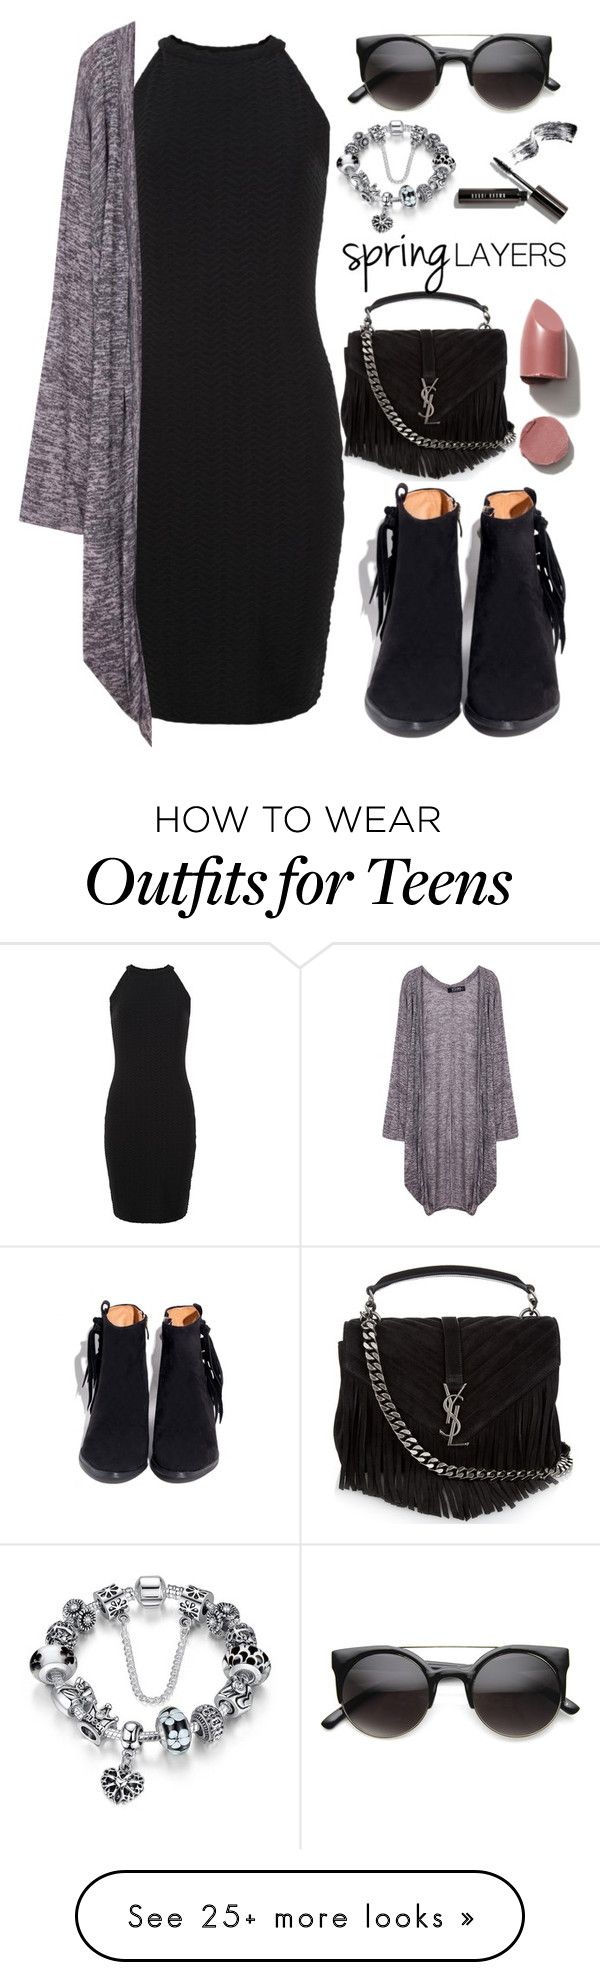 """Spring Layers"" by amrxo on Polyvore featuring New Look, Yves Saint Laurent, Bobbi Brown Cosmetics, cutecardigan and springlayers"